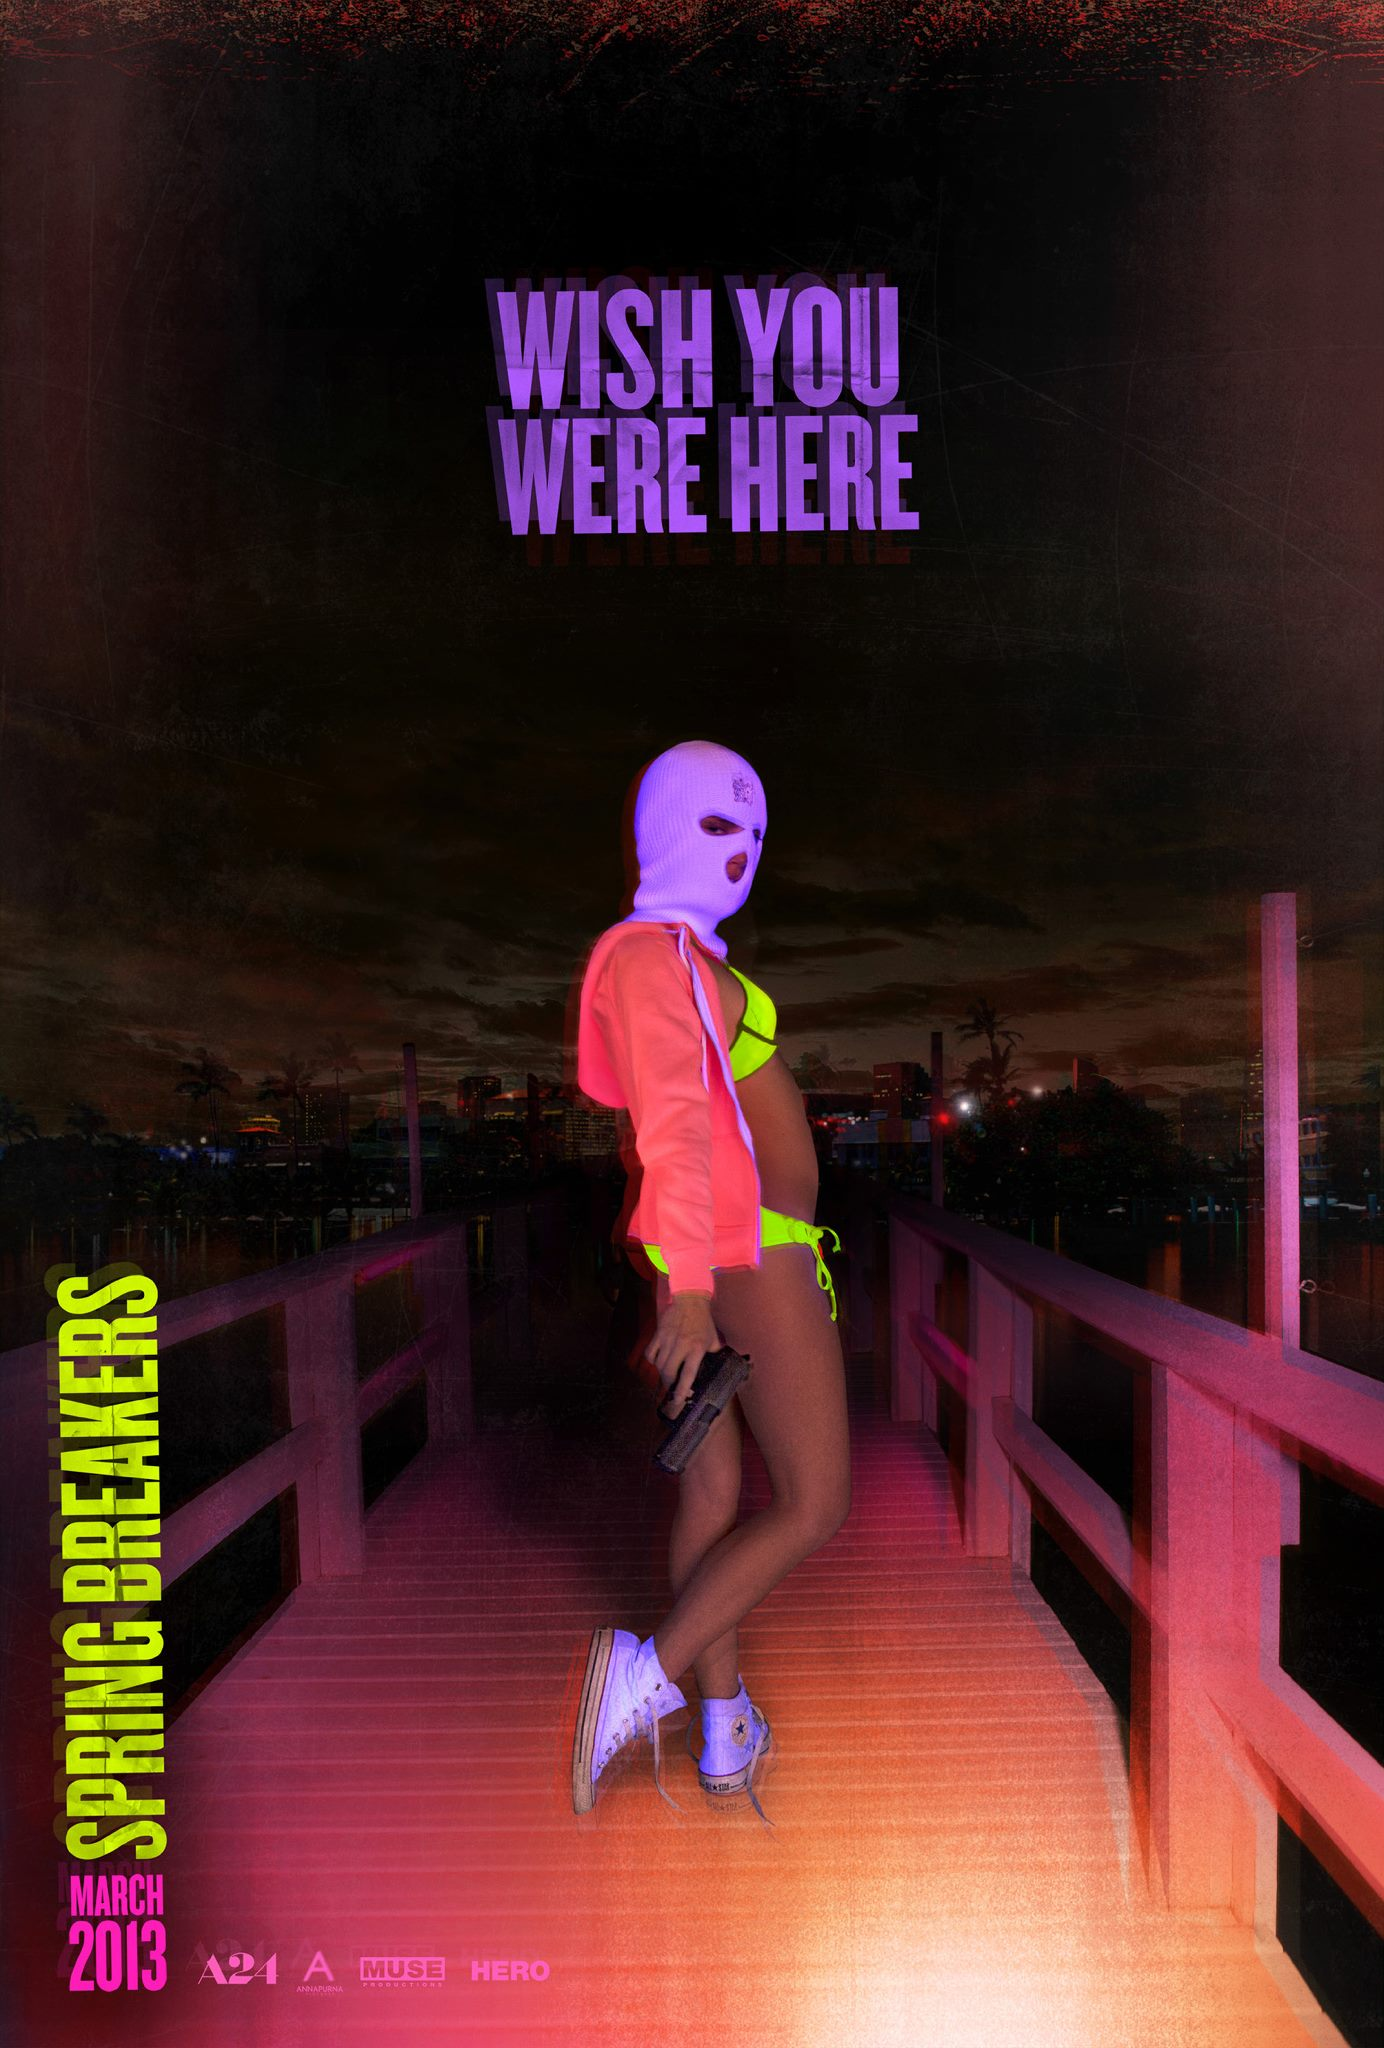 Spring Breakers (2012) - Directed by: Harmony KorineStarring: Vanessa Hudgens, Selena Gomez, James Franco, Ashley Benson, Rachel KorineRated: RRunning Time: 1h 34mTMM Score: 5 stars out of 5STRENGTHS: Editing, Lighting, EnergyWEAKNESSES: Extreme Content